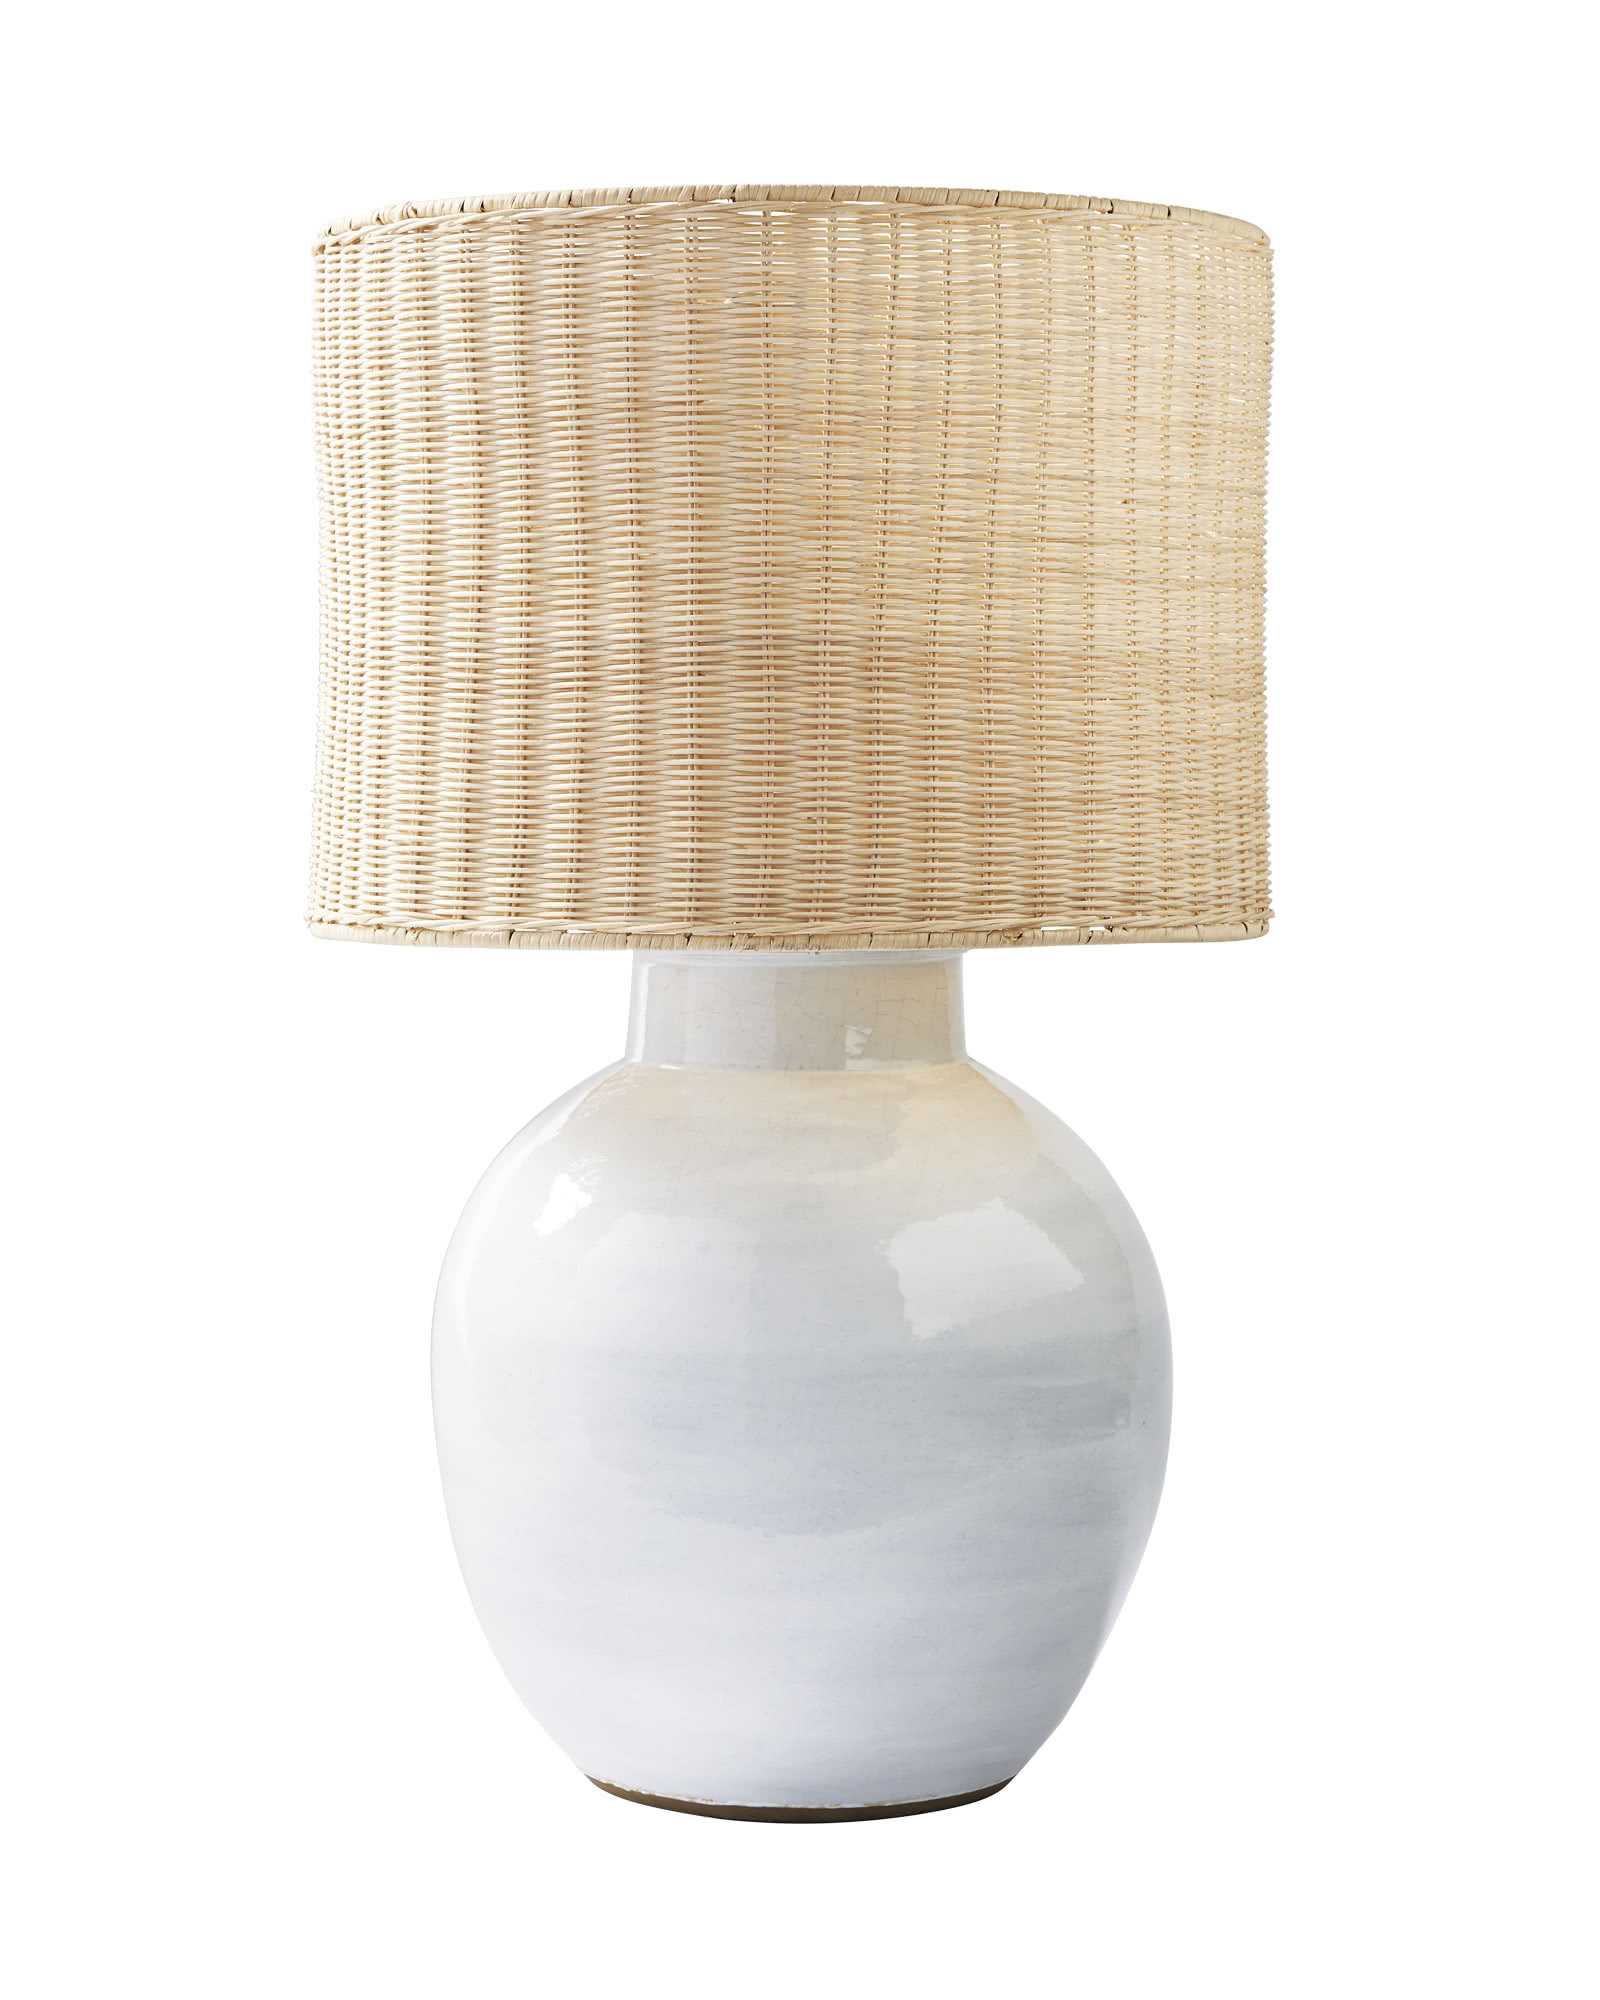 Morris Table Lamp, Wicker